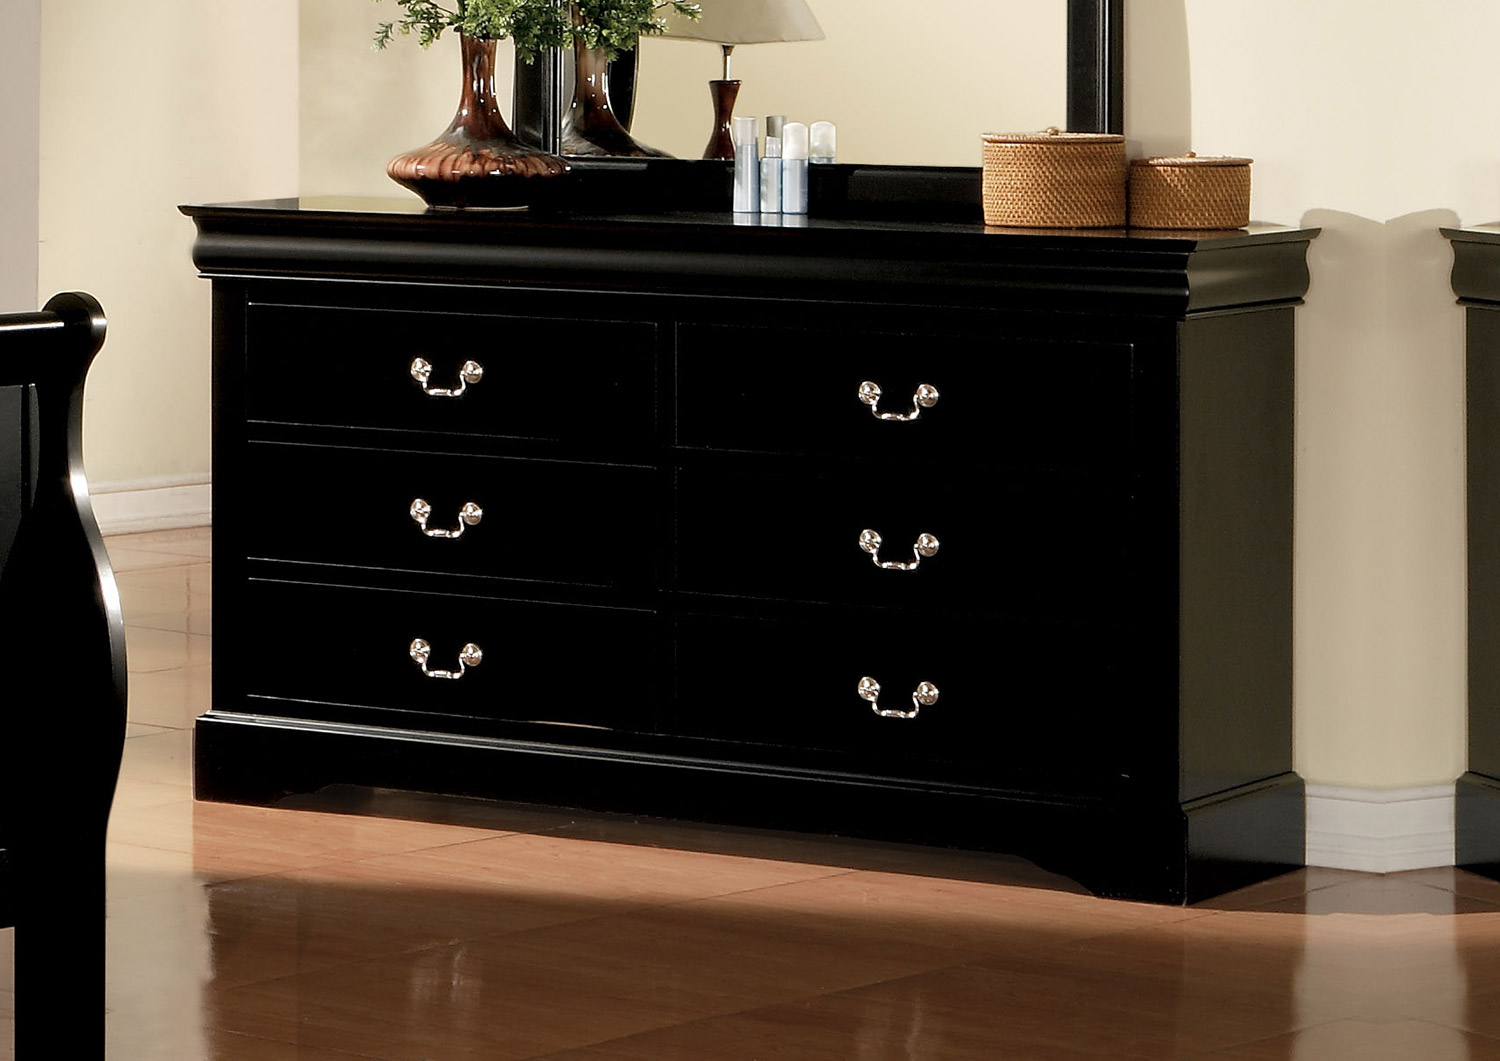 Acme Louis Philippe III Dresser - Black